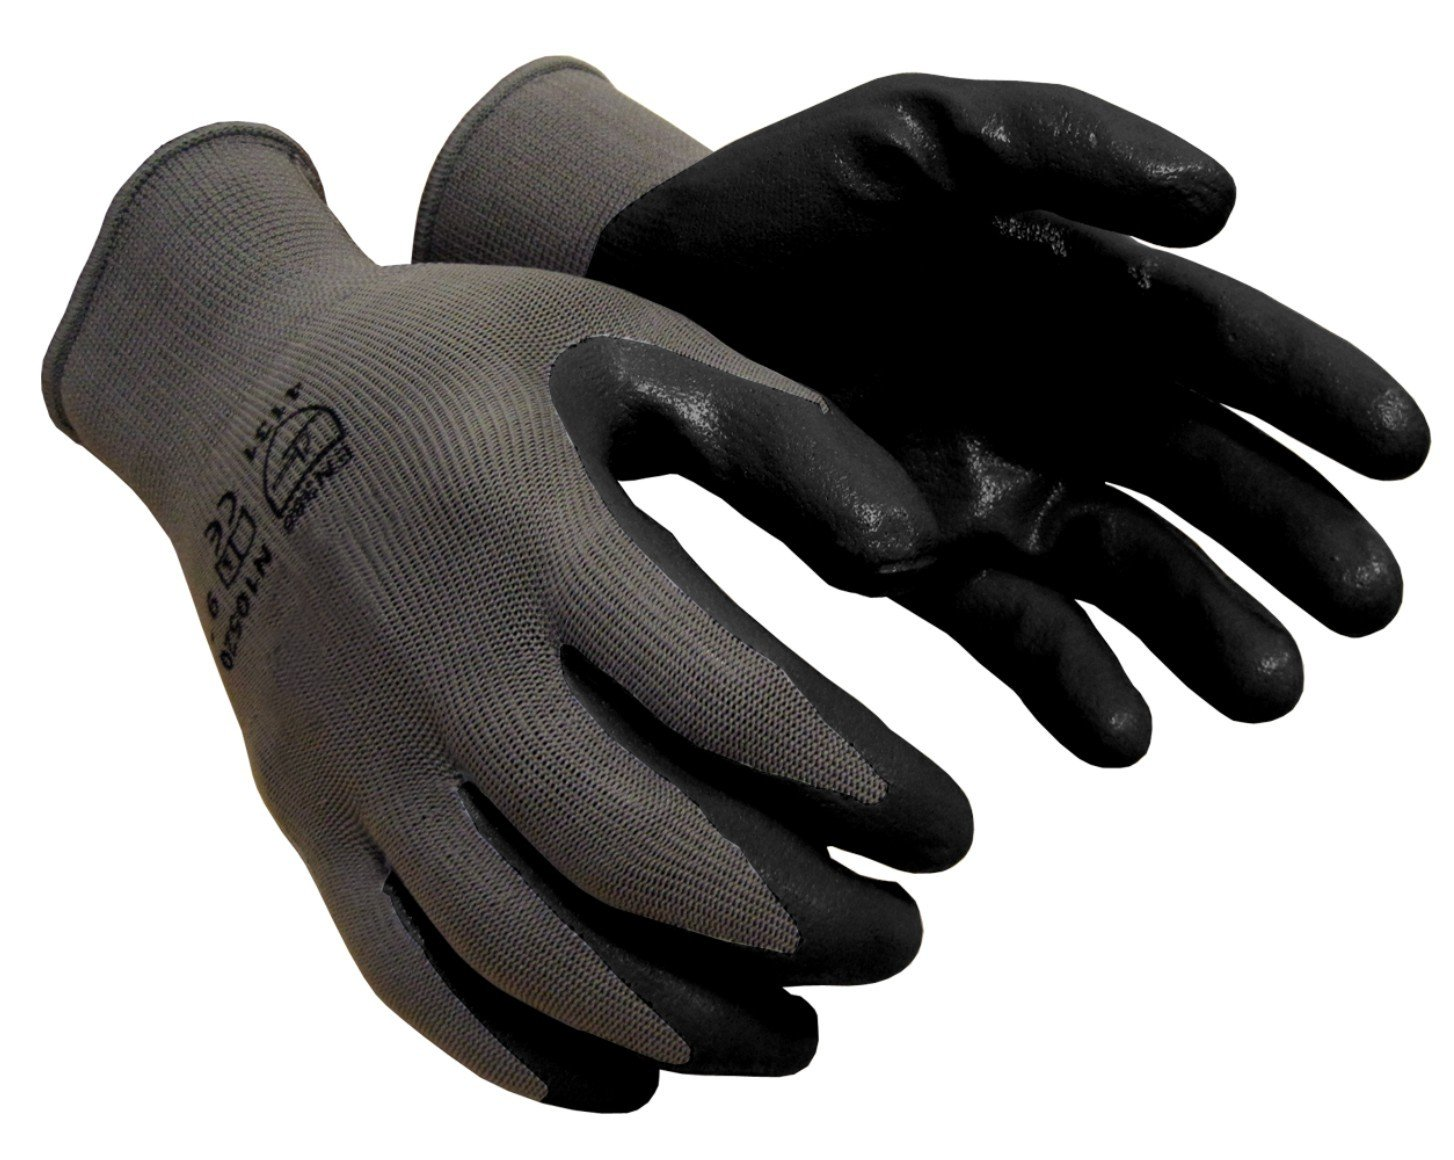 Azusa Safety N10520 13 Gauge Knit Gray Nylon Safety Gloves, Black Nitrile Foam Textured Coated, Medium (Pack of 12 Pairs)